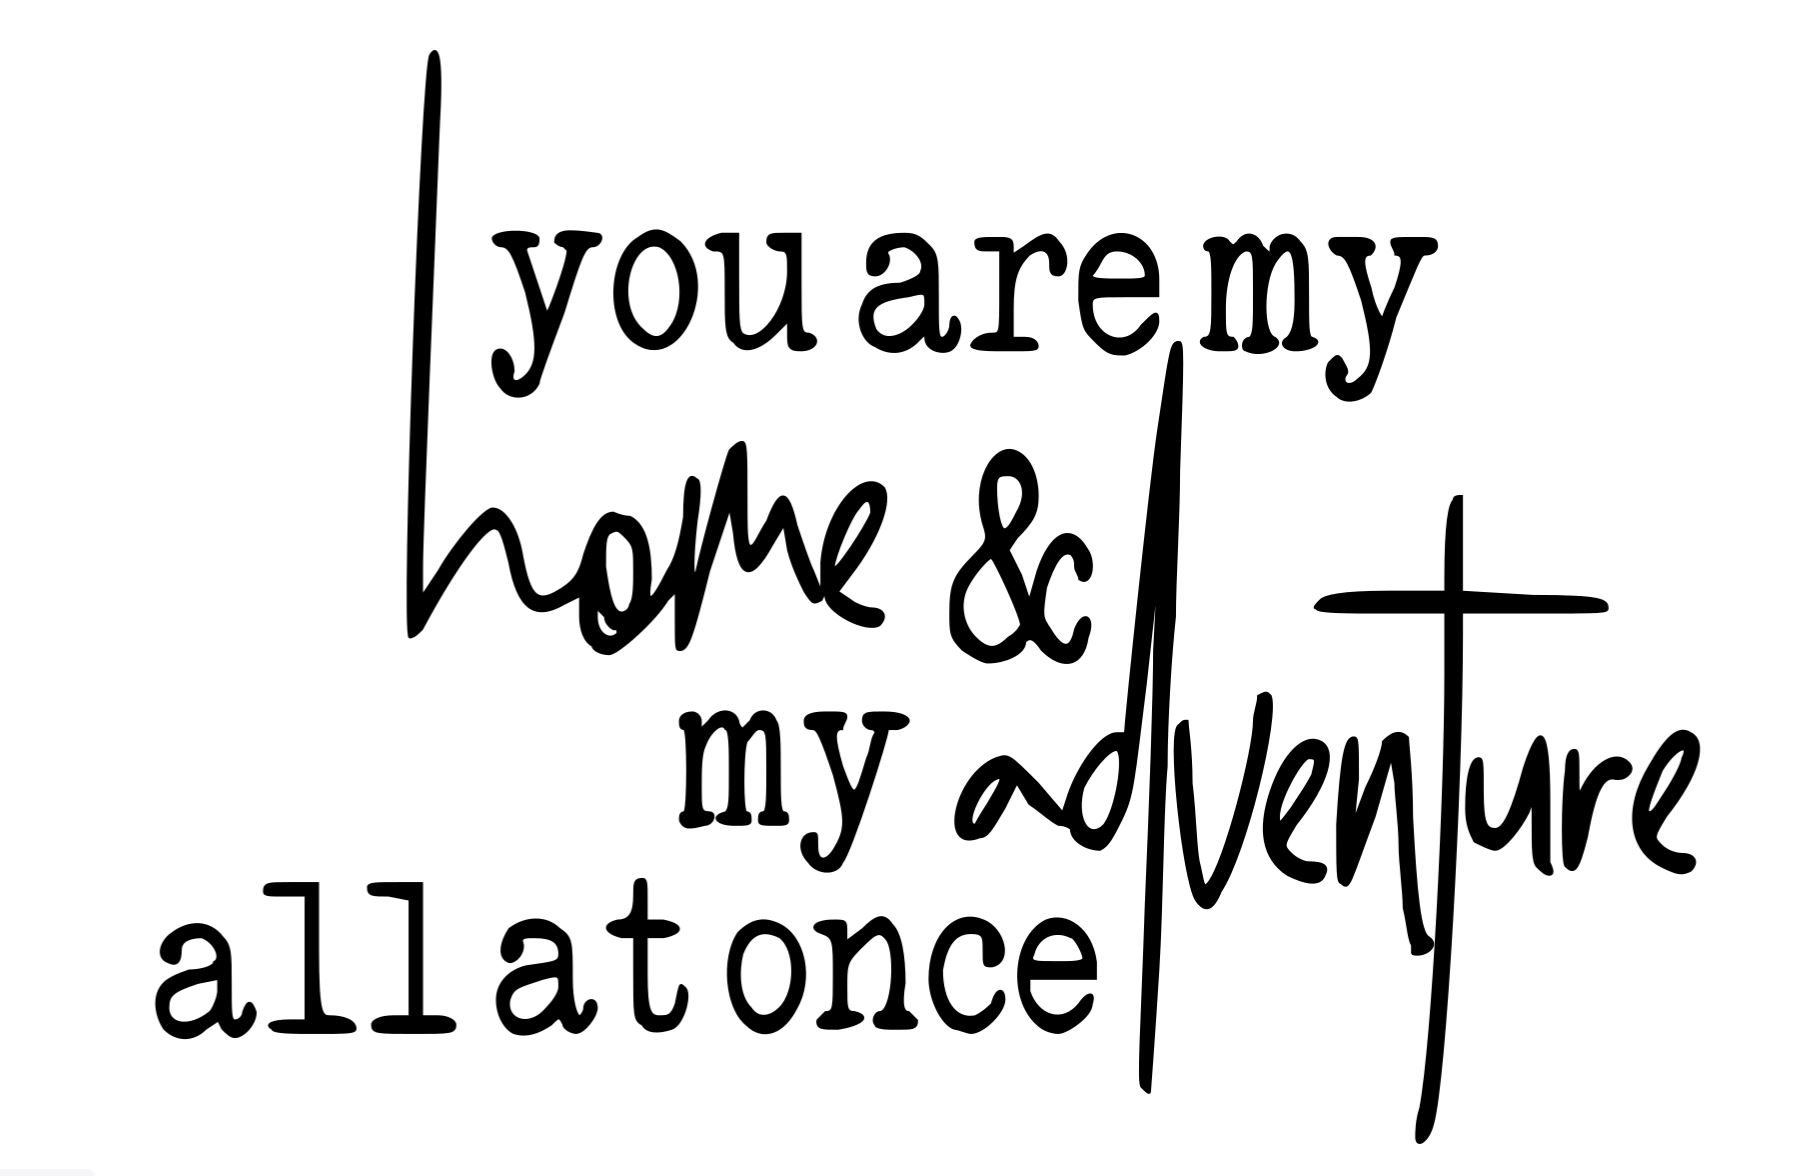 You are my home and adventure - Copy